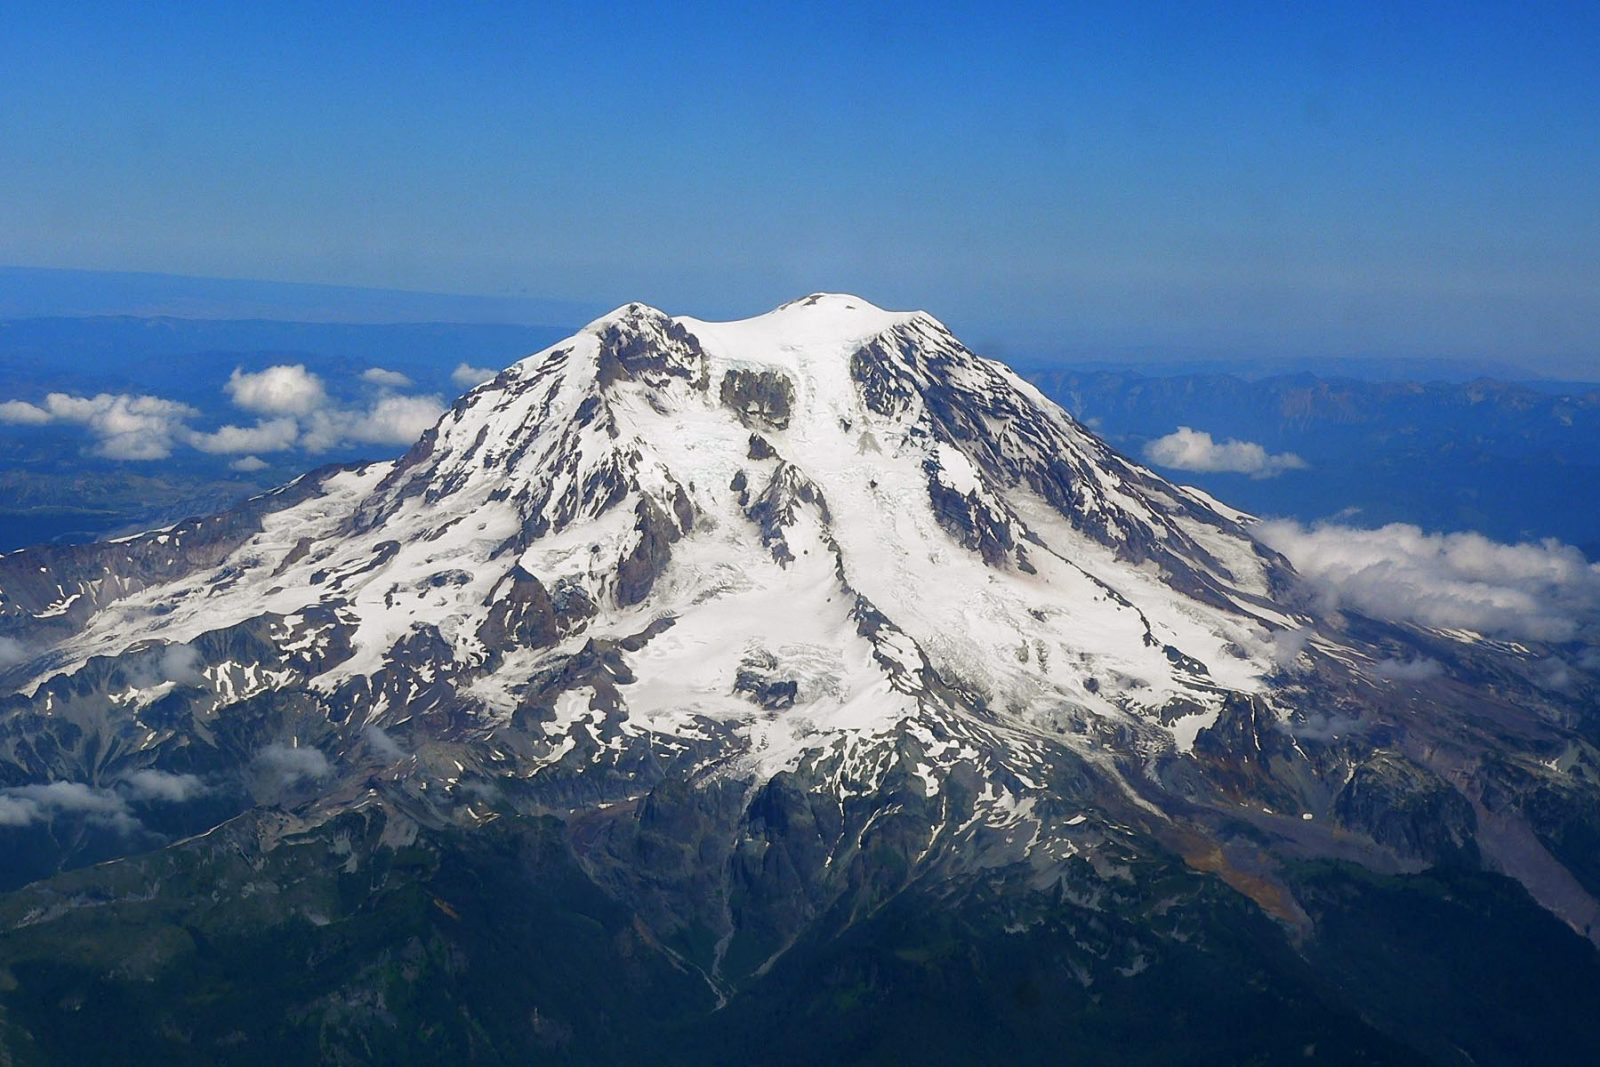 Mount Rainier as seen from the west. WikiCommons photo